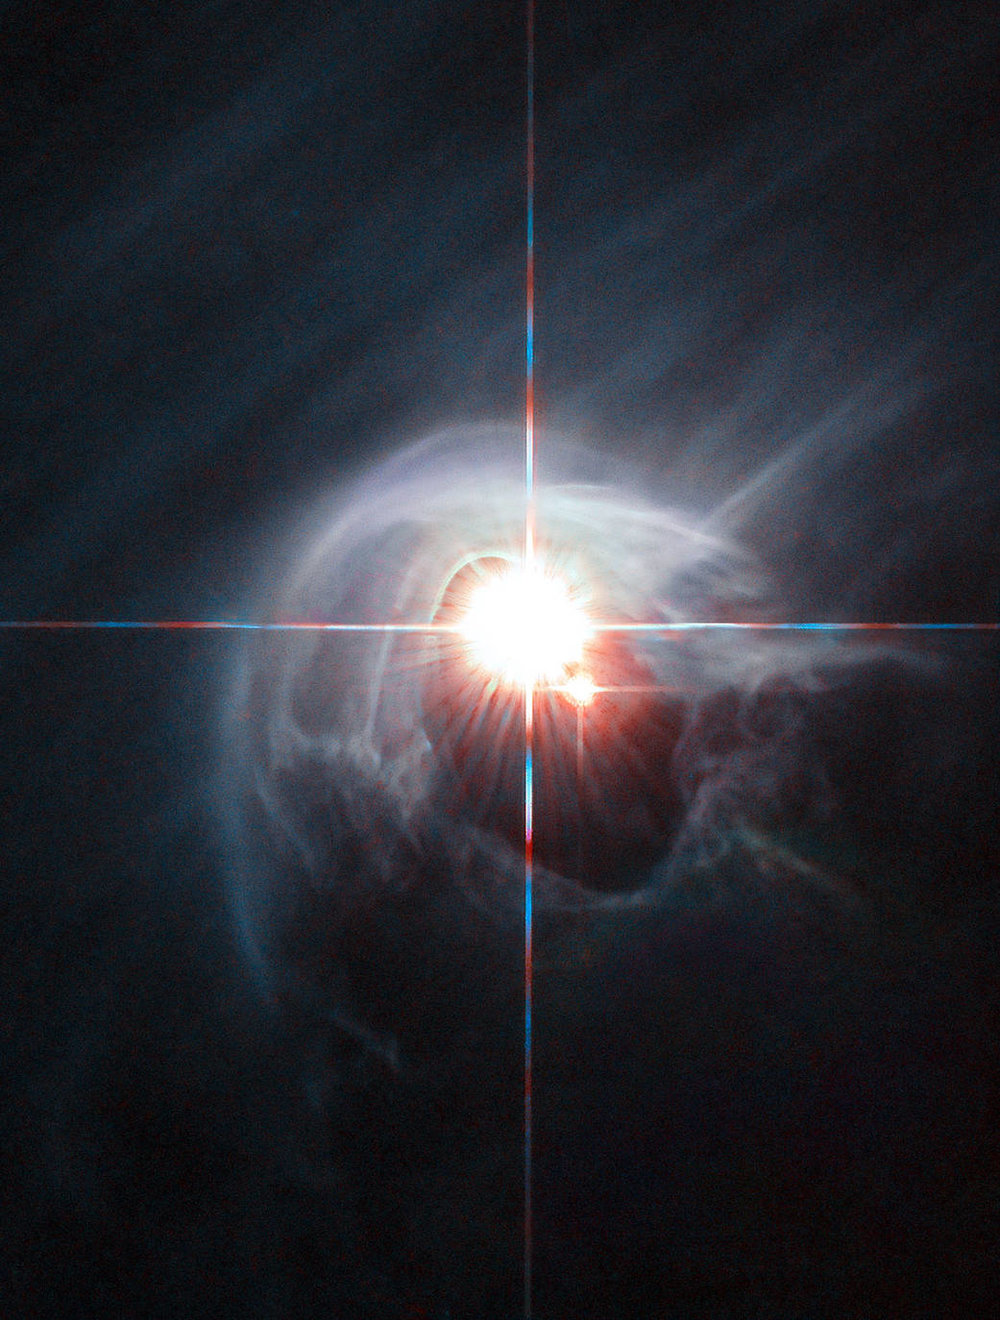 Two stars shine through the center of a ring of cascading dust in this image taken by the NASA/ESA Hubble Space Telescope. The star system is named DI Cha, and while only two stars are apparent, it is actually a quadruple system containing two sets of binary stars. As this is a relatively young star system it is surrounded by dust. The young stars are molding the dust into a wispy wrap. The host of this alluring interaction between dust and star is the Chamaeleon I dark cloud — one of three such clouds that comprise a large star-forming region known as the Chamaeleon Complex. DI Cha's juvenility is not remarkable within this region. In fact, the entire system is among not only the youngest but also the closest collections of newly formed stars to be found and so provides an ideal target for studies of star formation. Image credit: ESA/Hubble & NASA, Acknowledgement: Judy Schmidt